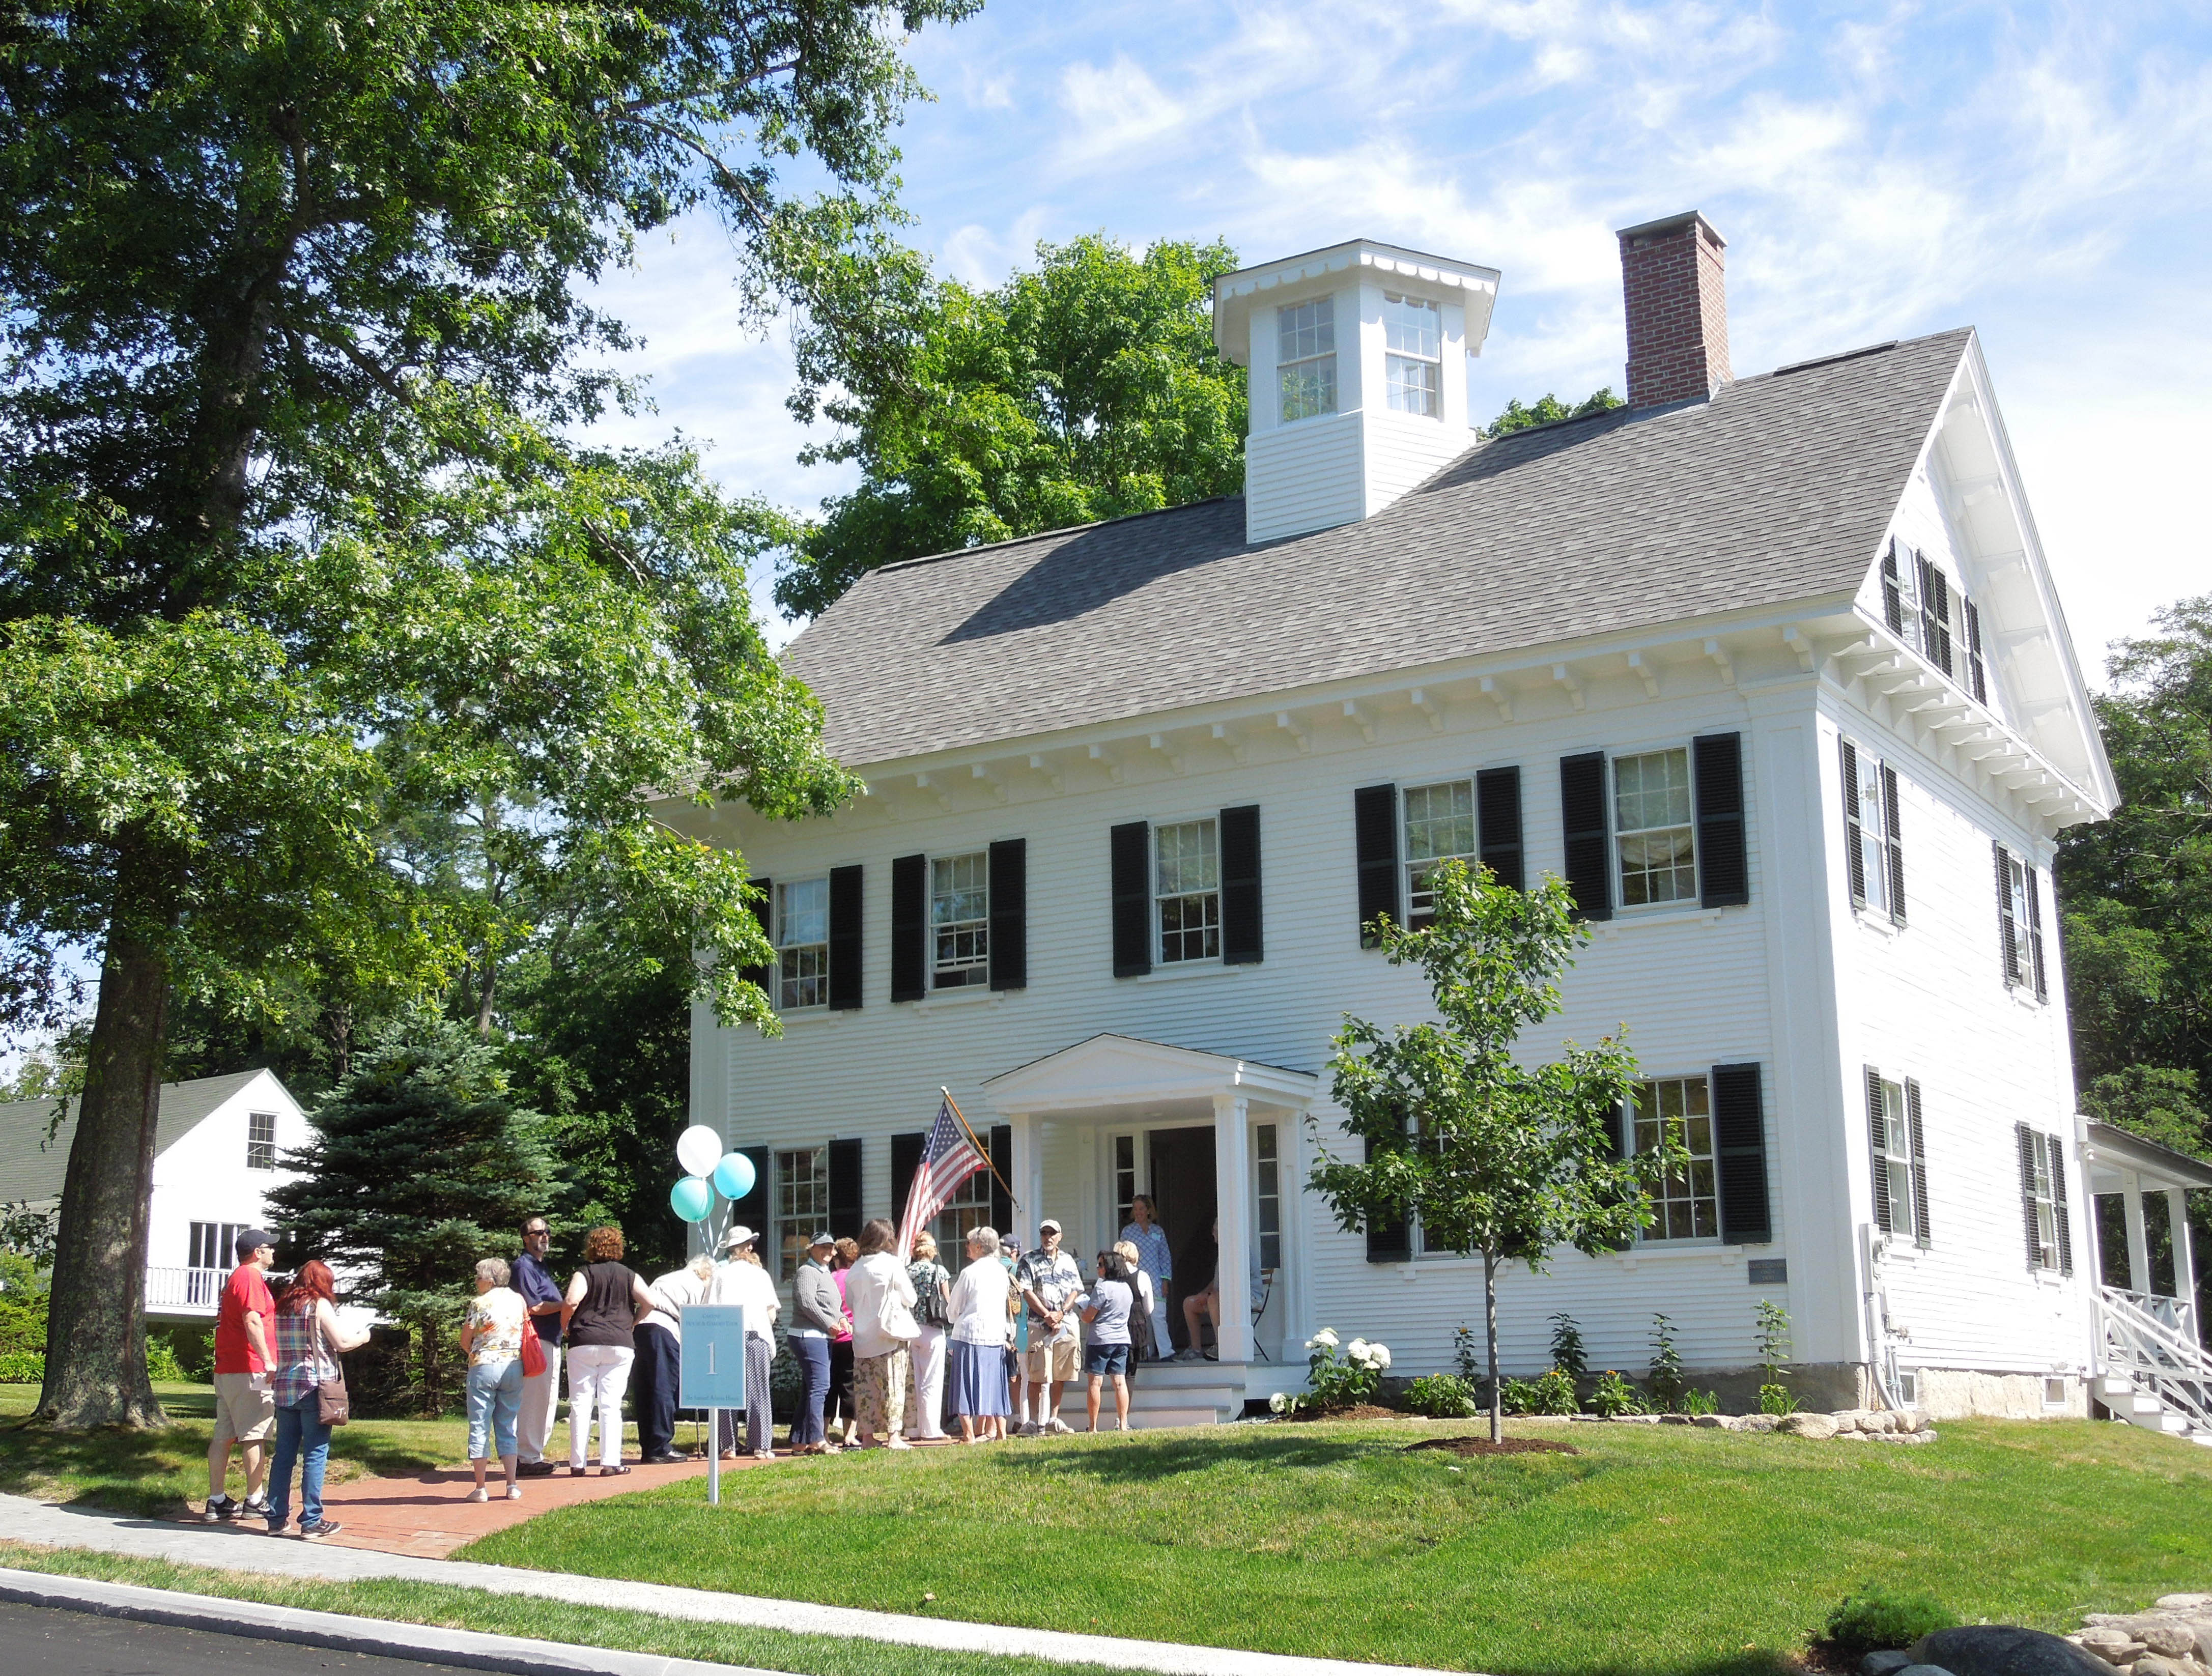 House and Garden Tour - Castine Historical Society